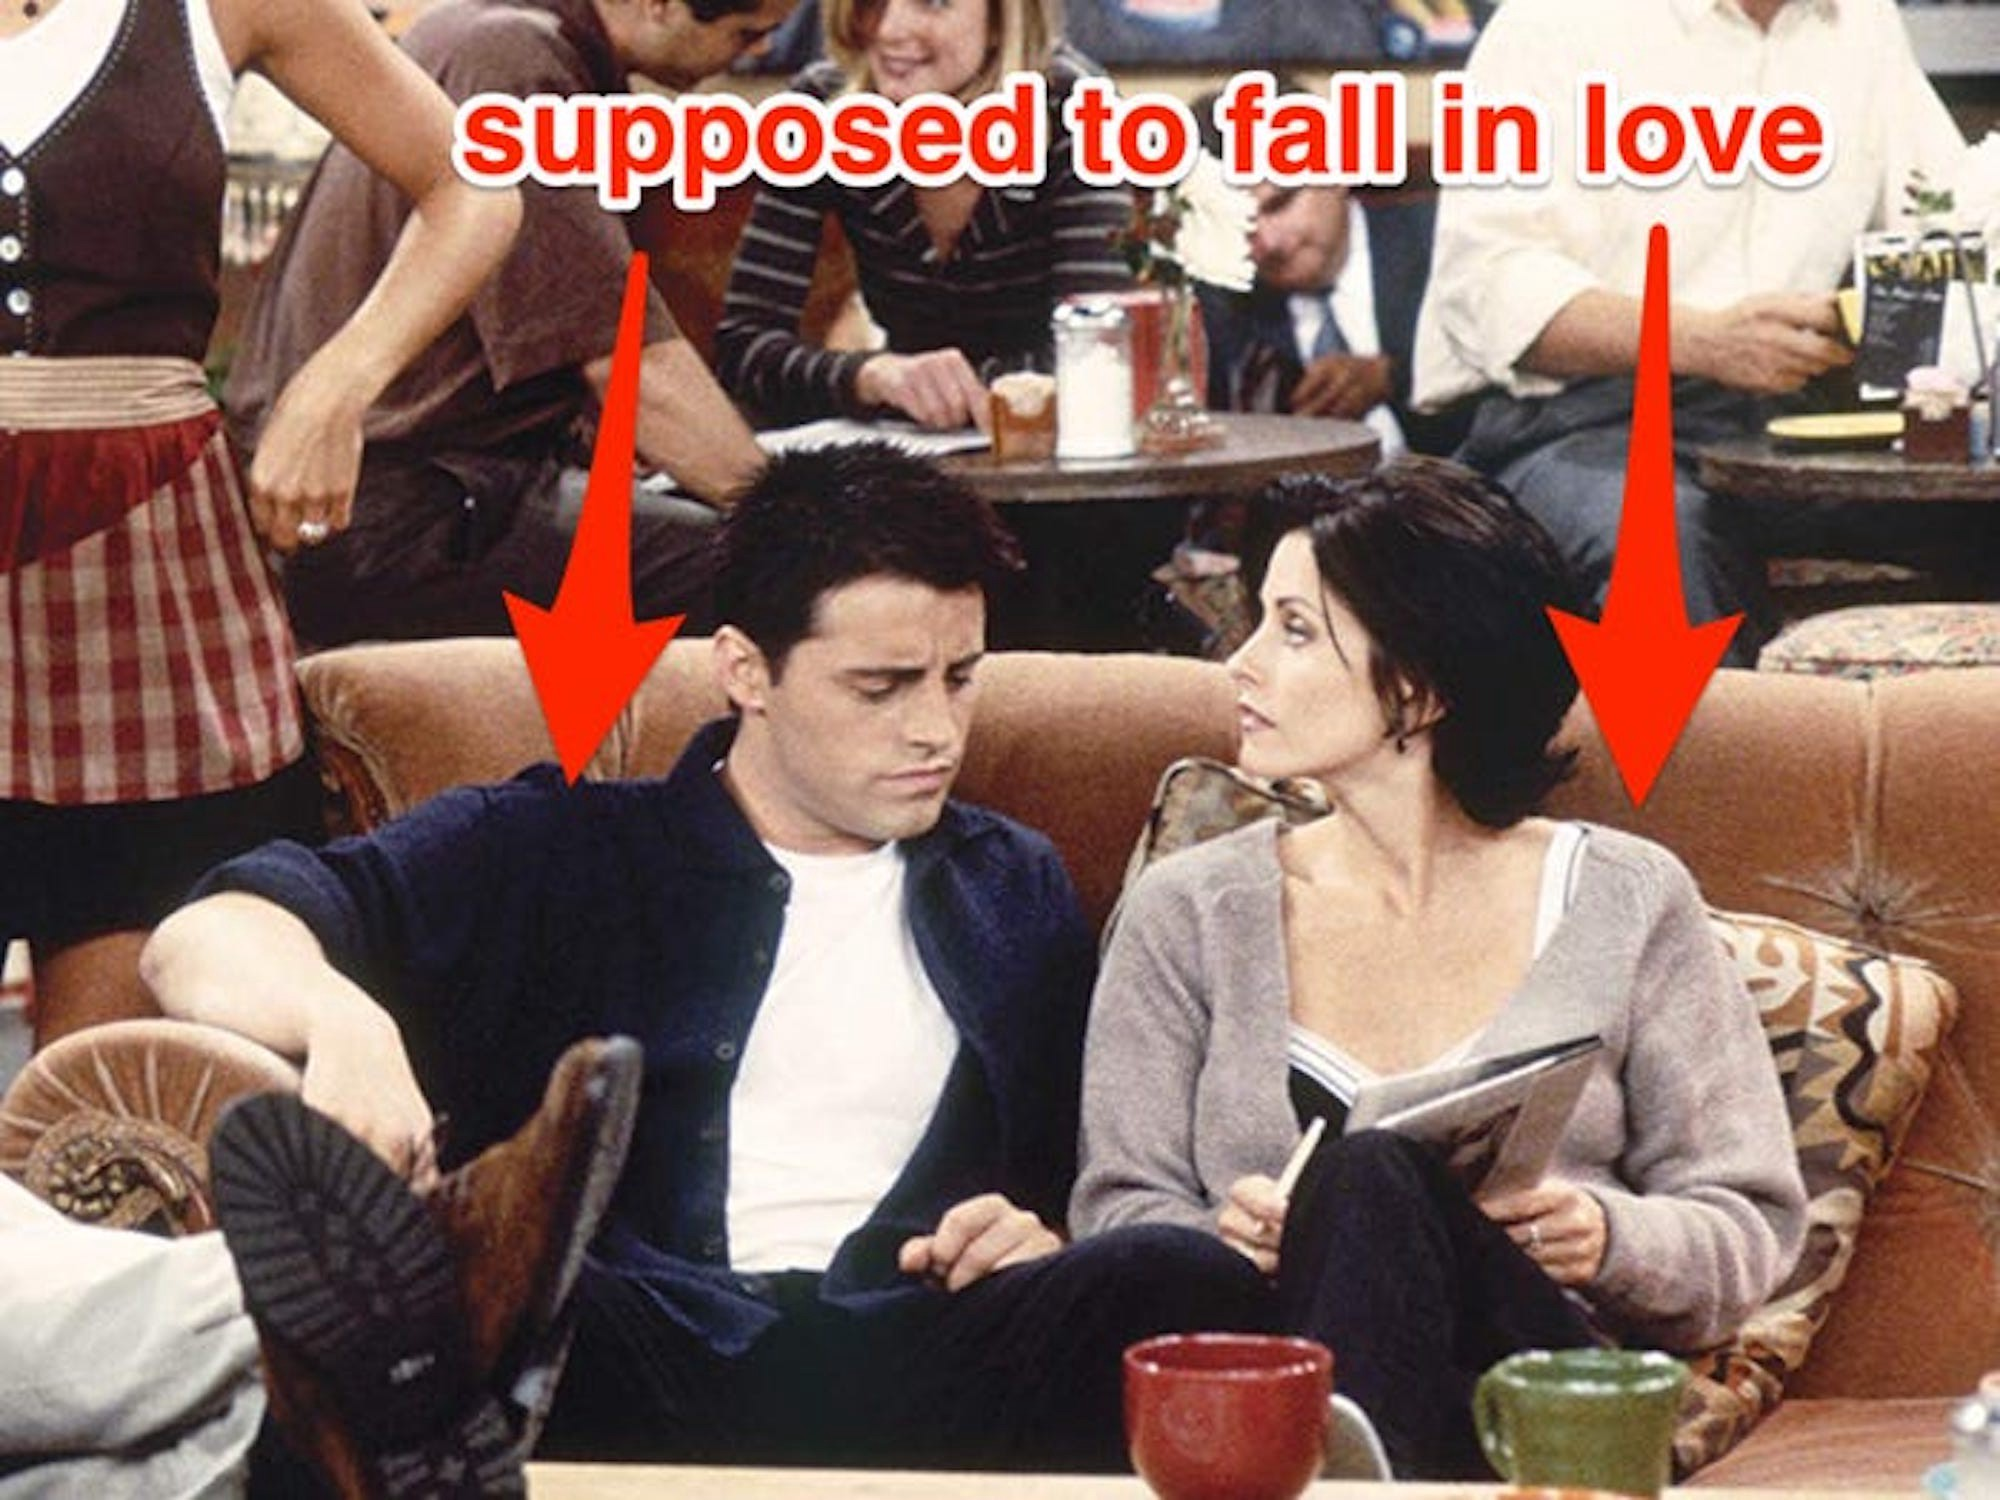 """A scene from """"Friends"""" featuring Joey and Monica with the words """"Supposed to fall in Love"""" in red above them."""